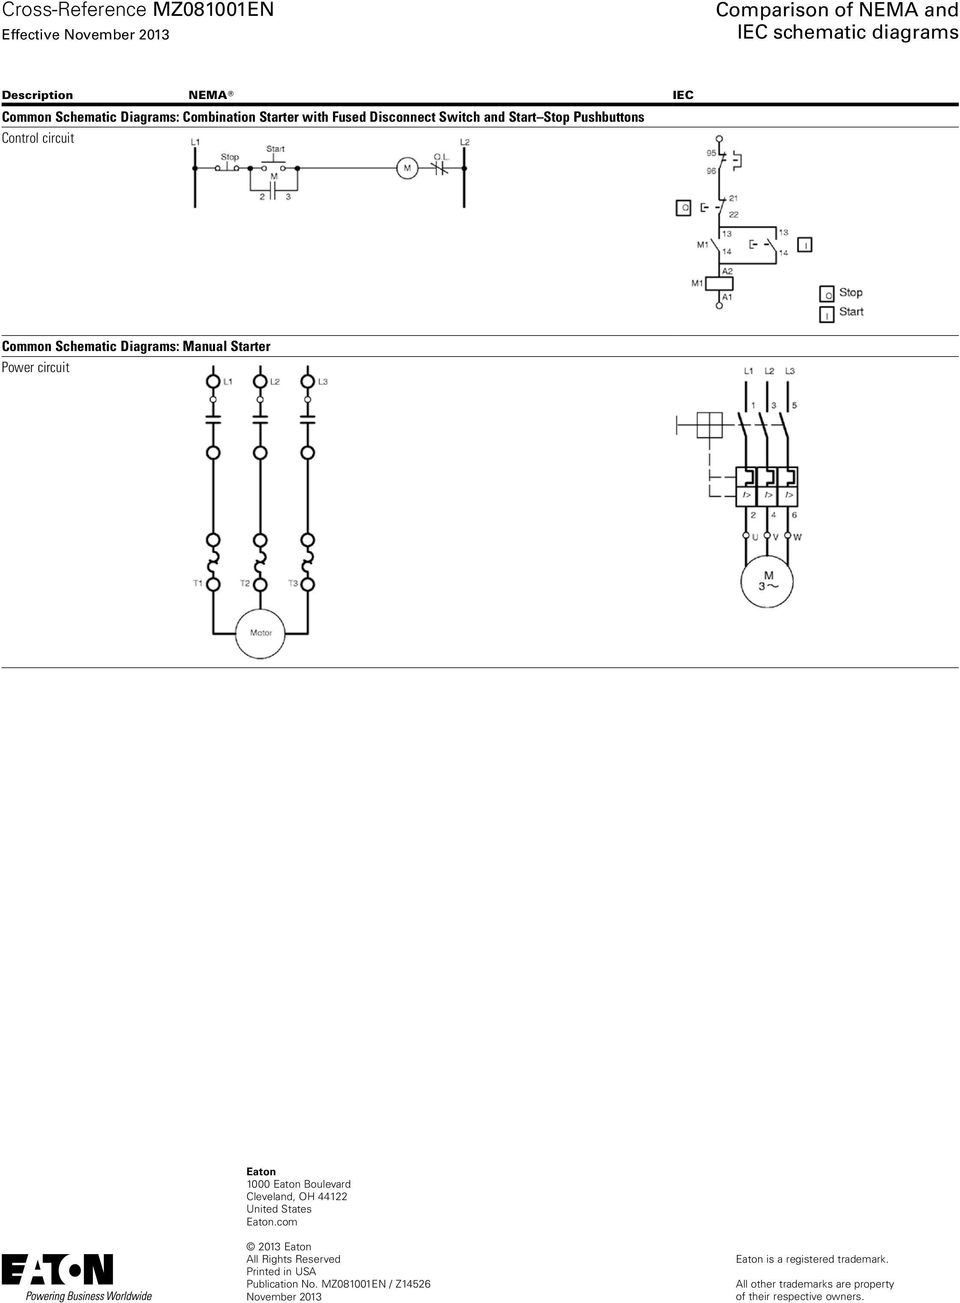 Comparison of NEMA and IEC schematic diagrams - PDF on c3 corvette wiring diagram, automotive starter diagram, starter switch diagram, hand off auto wiring diagram, starter system diagram, starter capacitor diagram, 2003 ford focus wiring diagram, starter assembly diagram, starter components diagram, dodge ram wiring diagram, starter fuse, starter check, starter relay diagram, starter wiring, starter motor diagram, starter parts diagram, starter connection diagram,